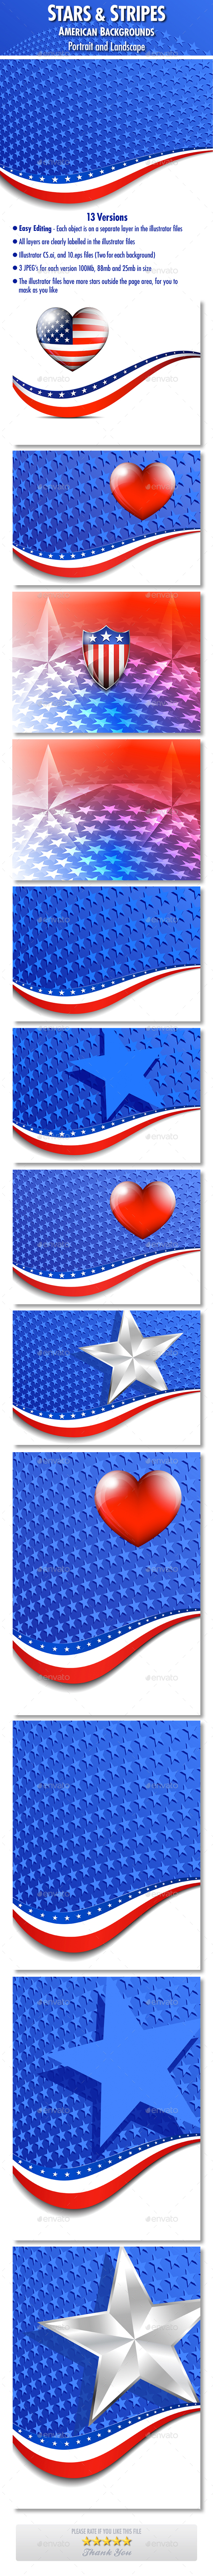 Stars & Stripes American Backgrounds